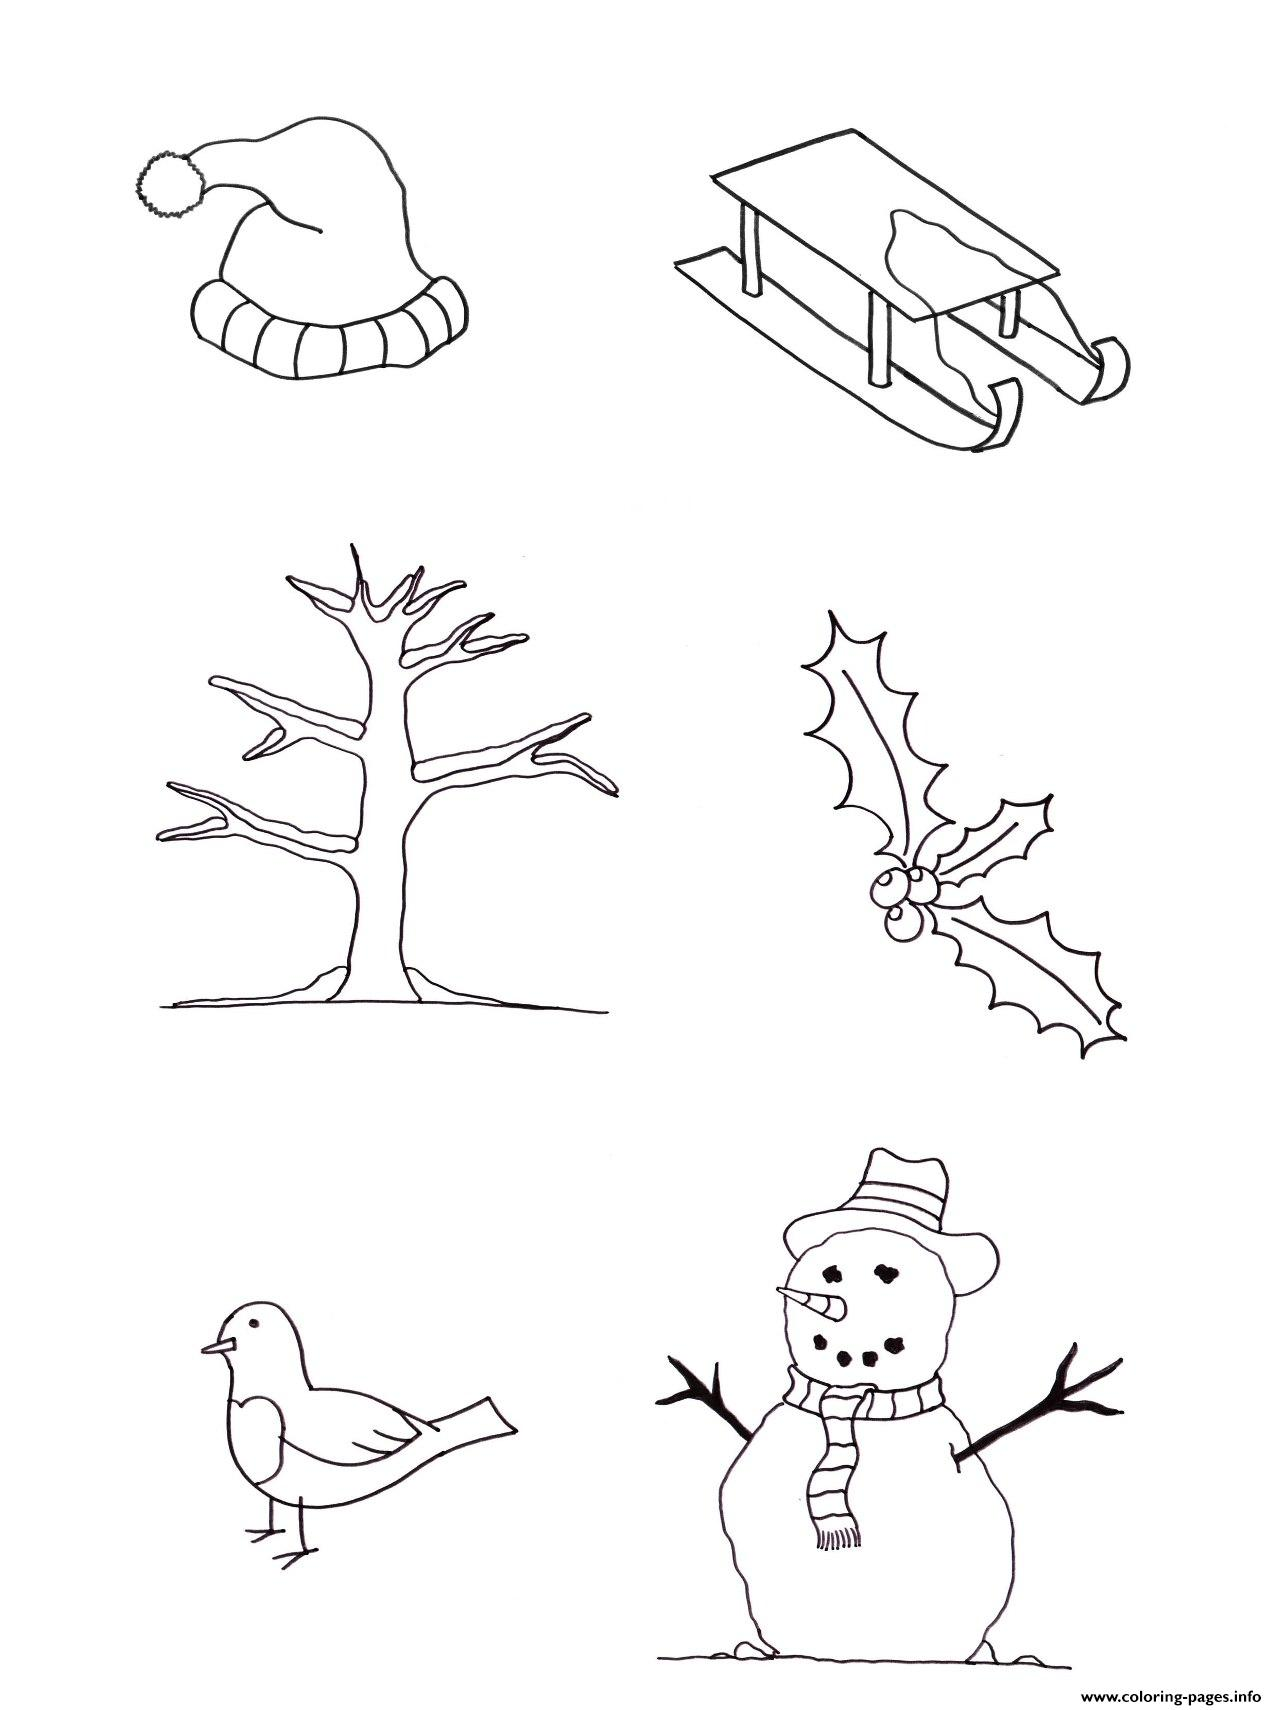 Winter For Kids Free09a1 Coloring Pages Printable